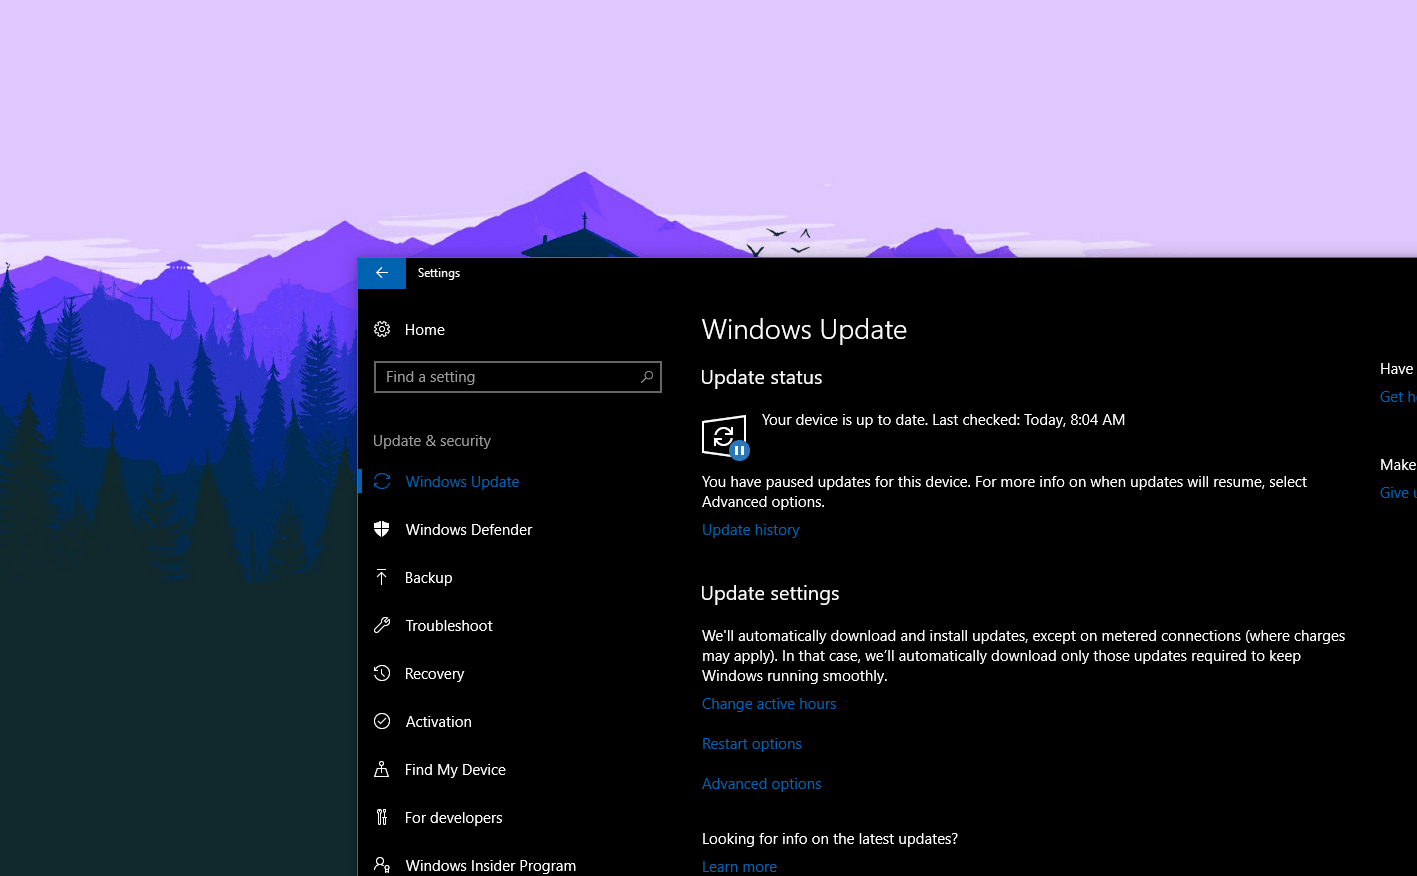 Microsoft begins killing off the Windows 8 app store